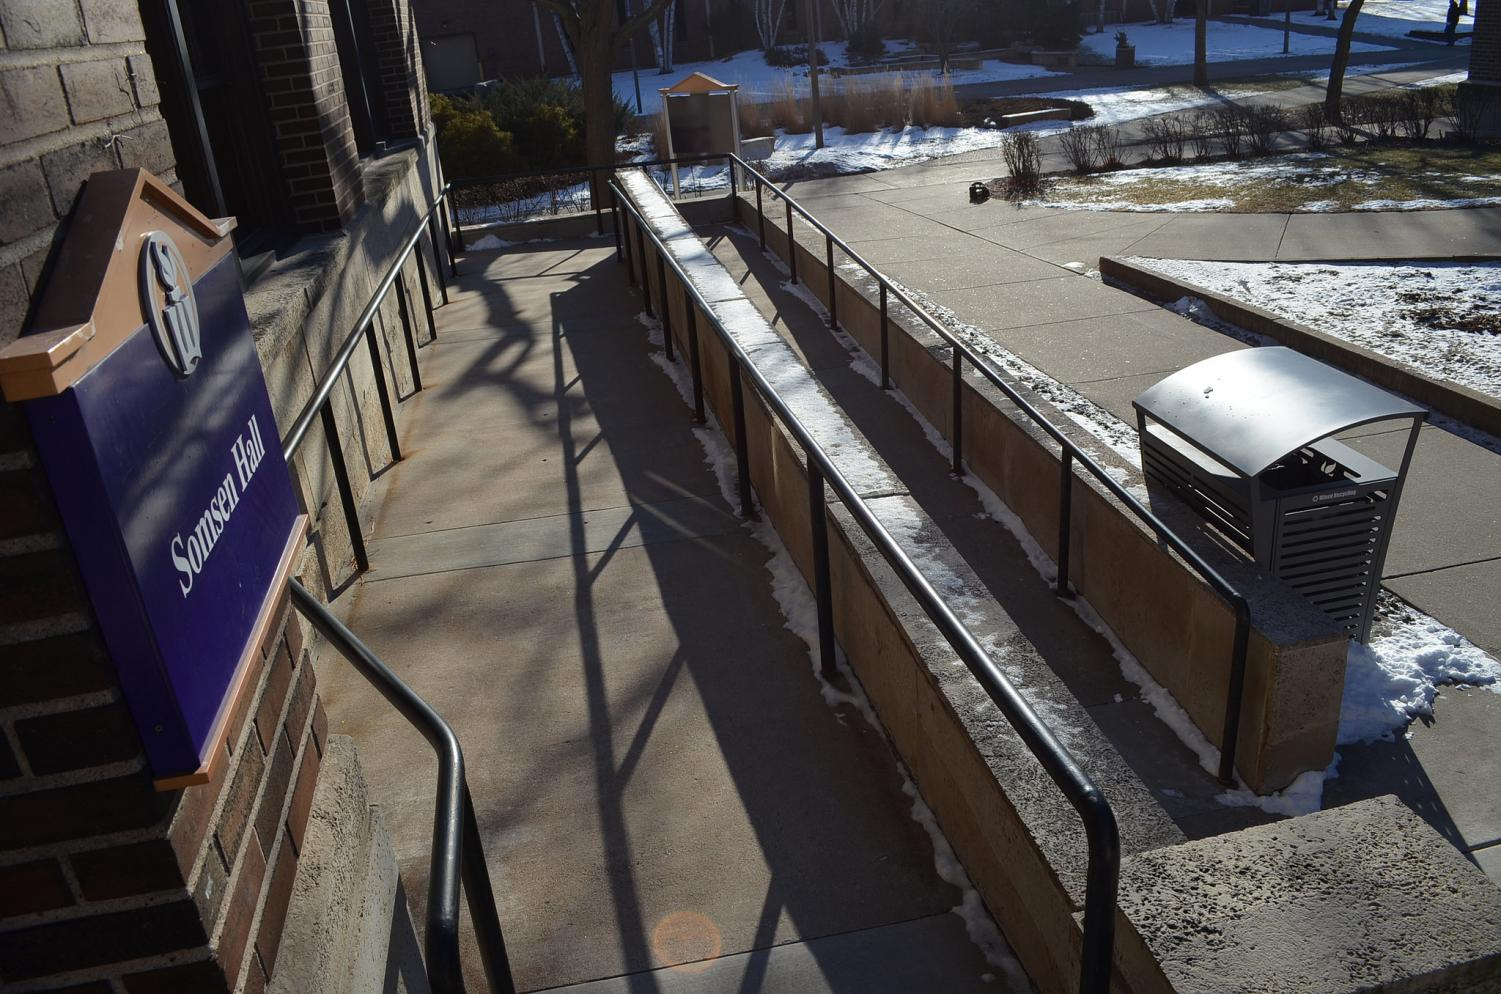 The ramp outside of Somsen Hall is used by many who are unable to use the stairs. While it is a good addition, turning corners can be tricky for many using wheelchairs or scooters and like many of the access services on campus could use improvements.